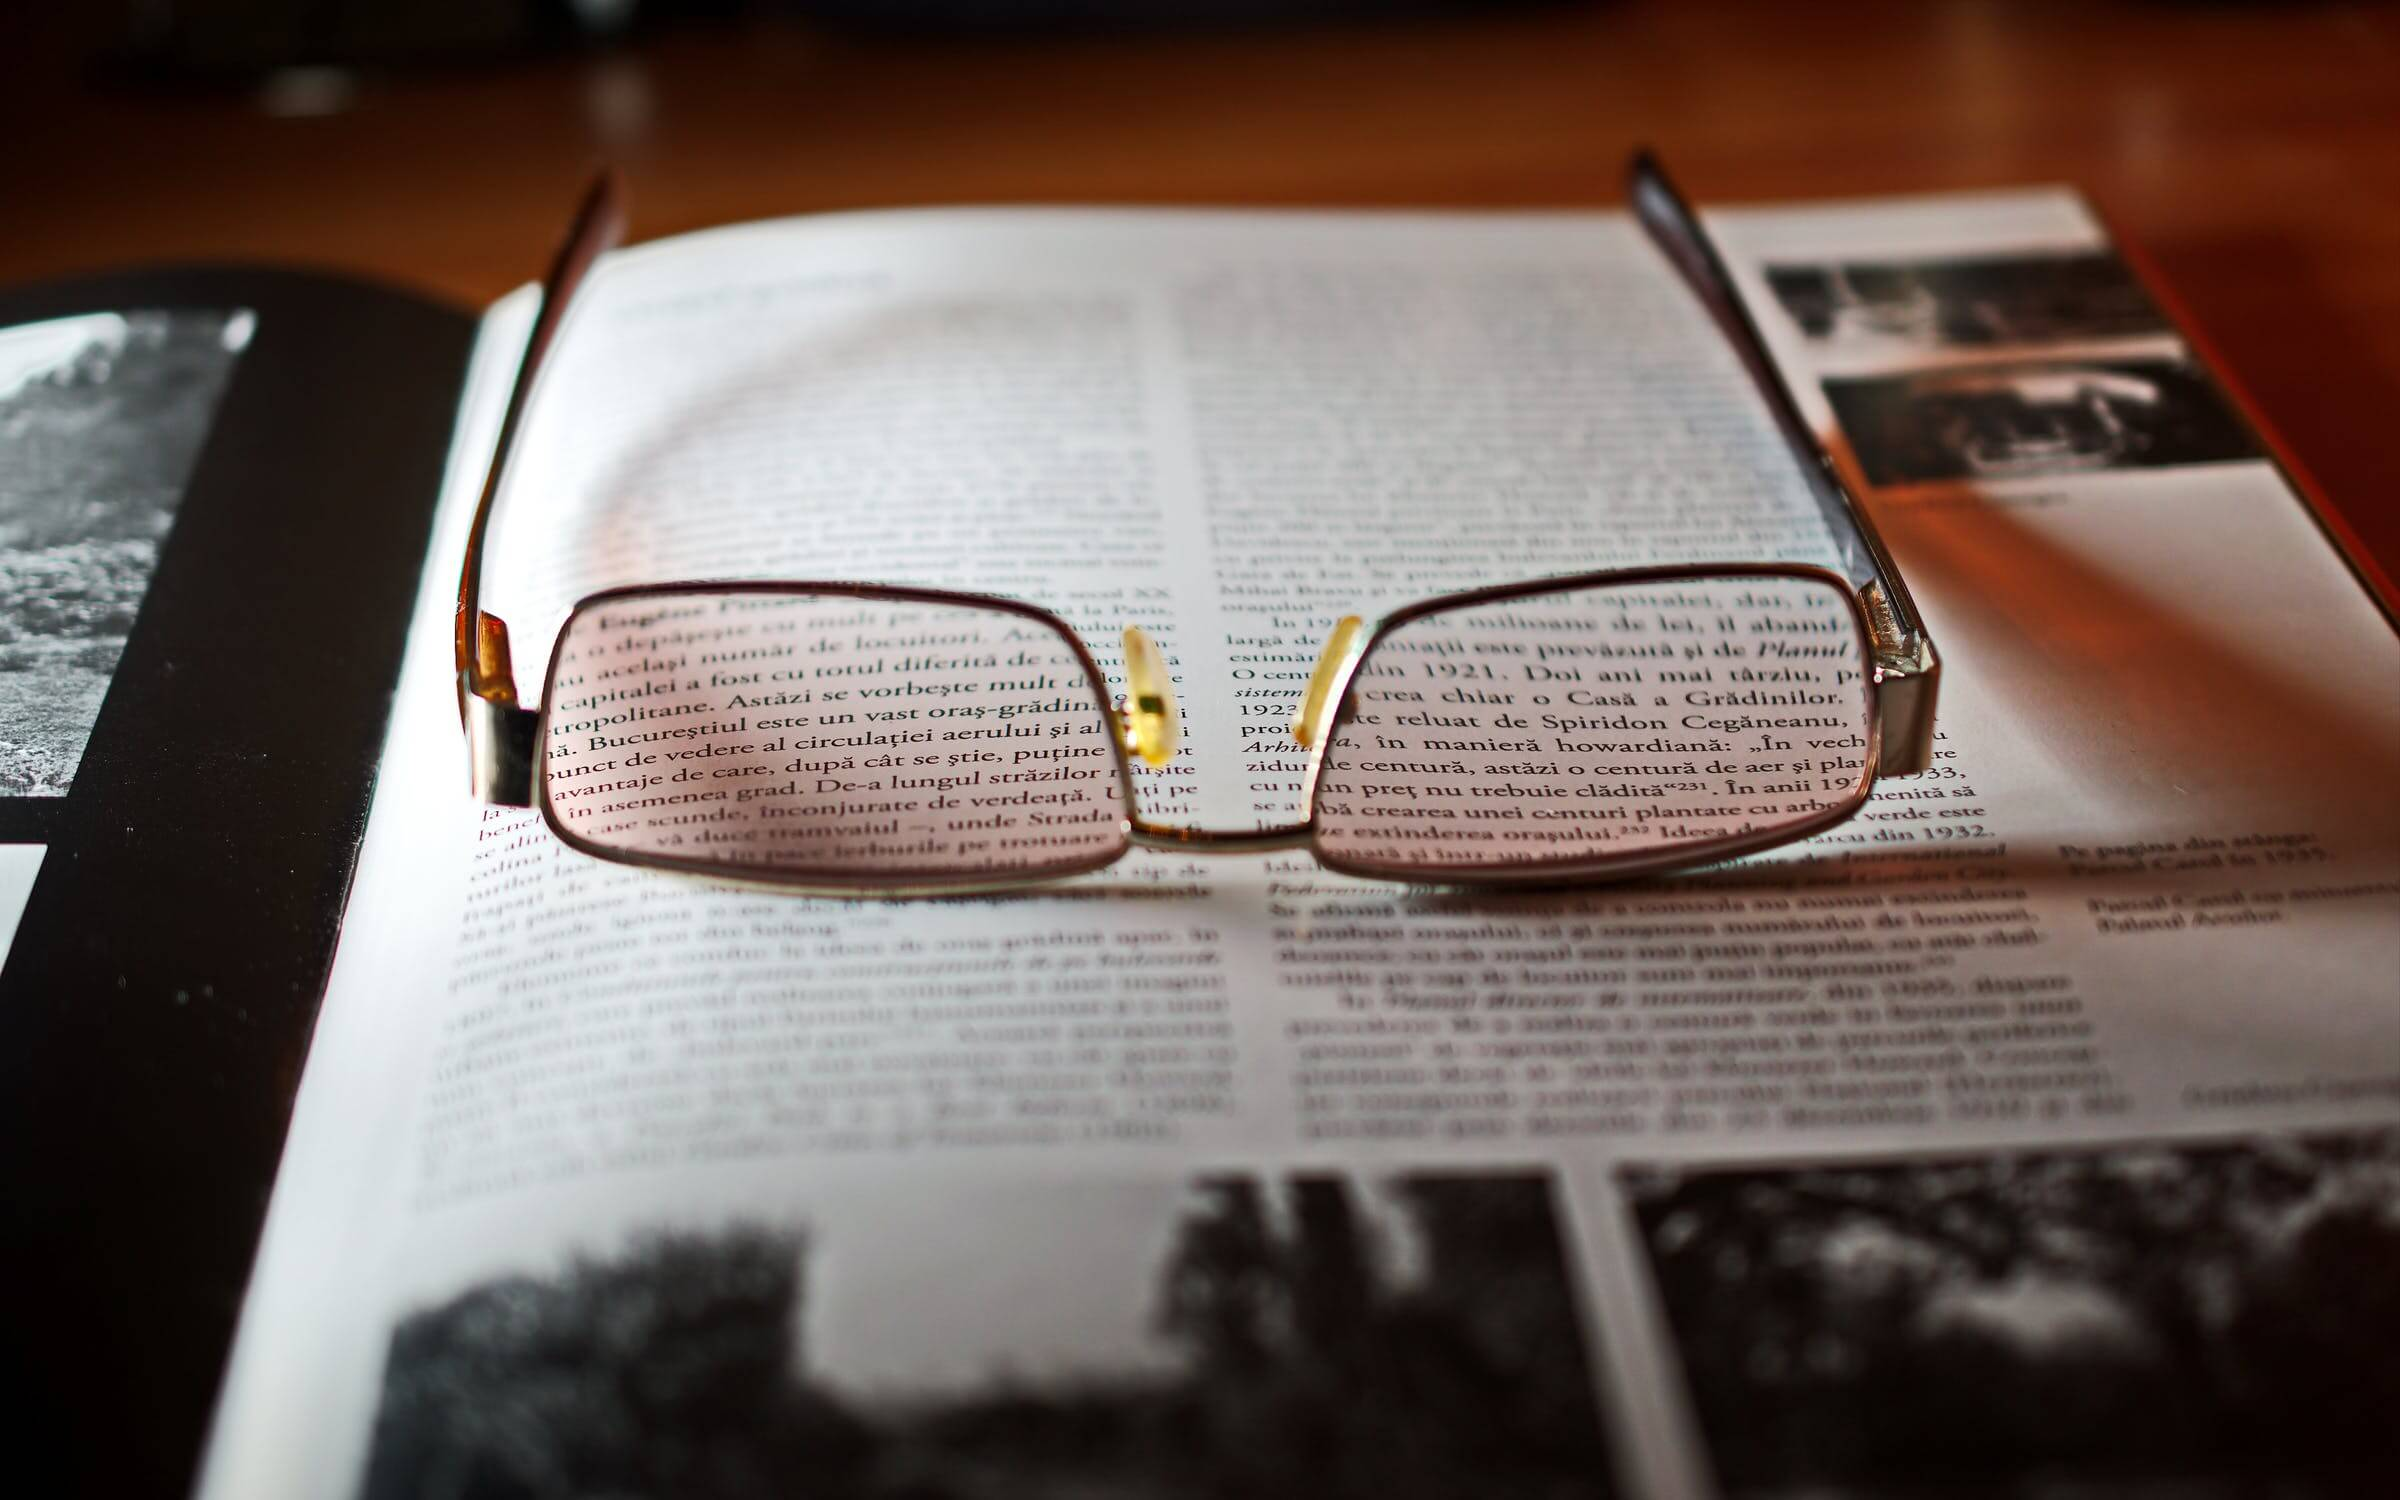 A pair of reading glasses on a book. Going to get health checkups is one of the healthy habits seniors can practice.